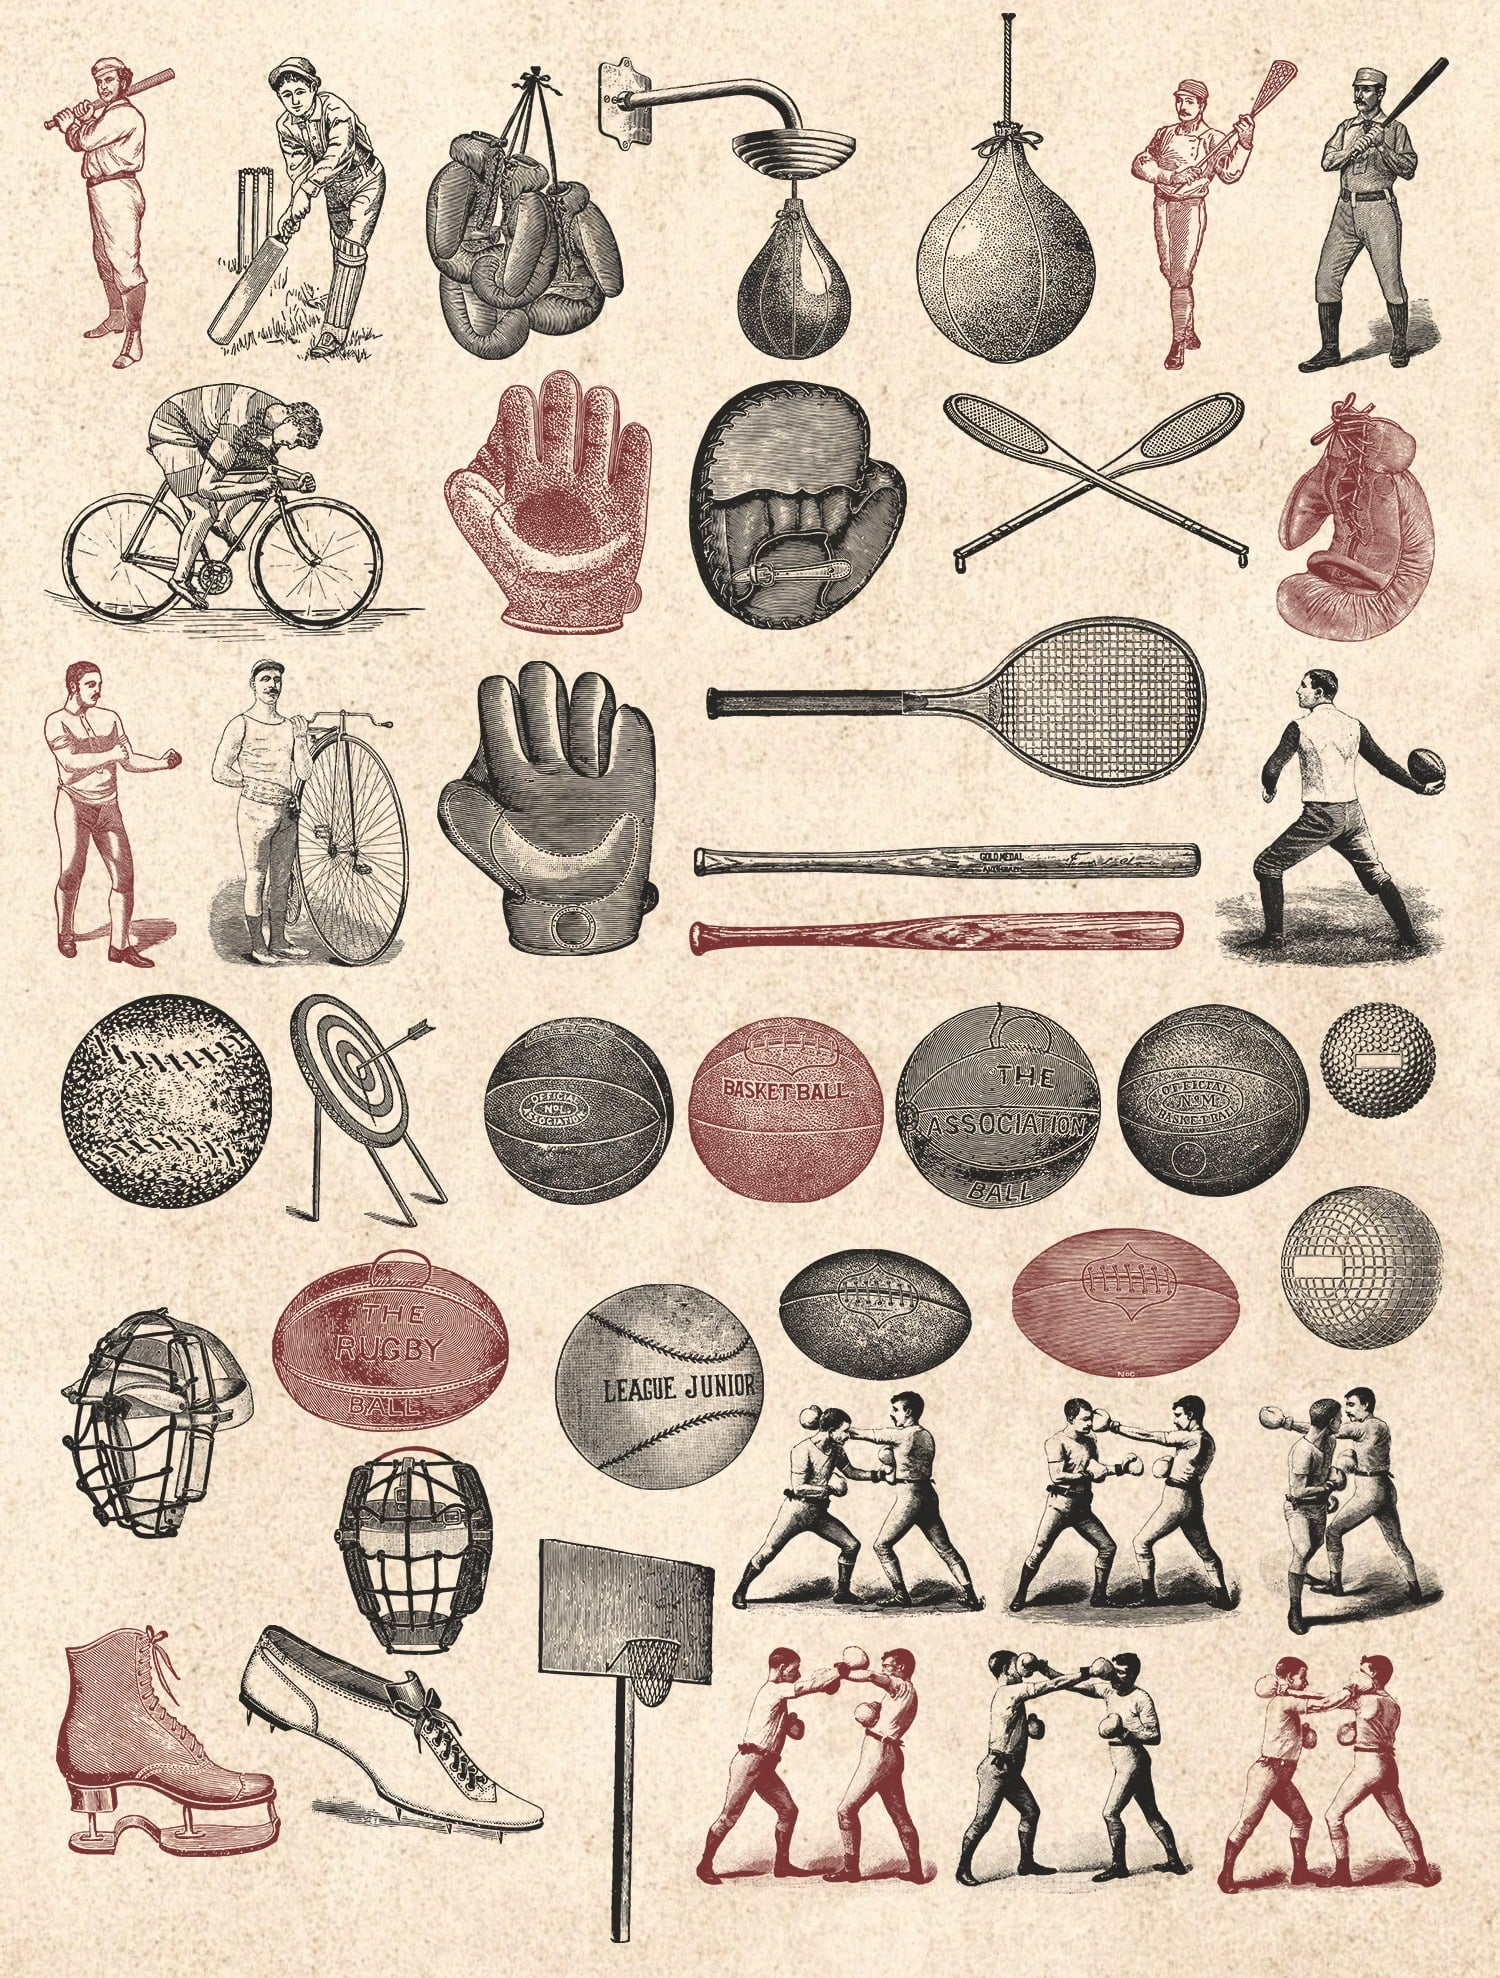 Sports are sports at any time. This is a large collection of vintage illustrations on a sports theme.